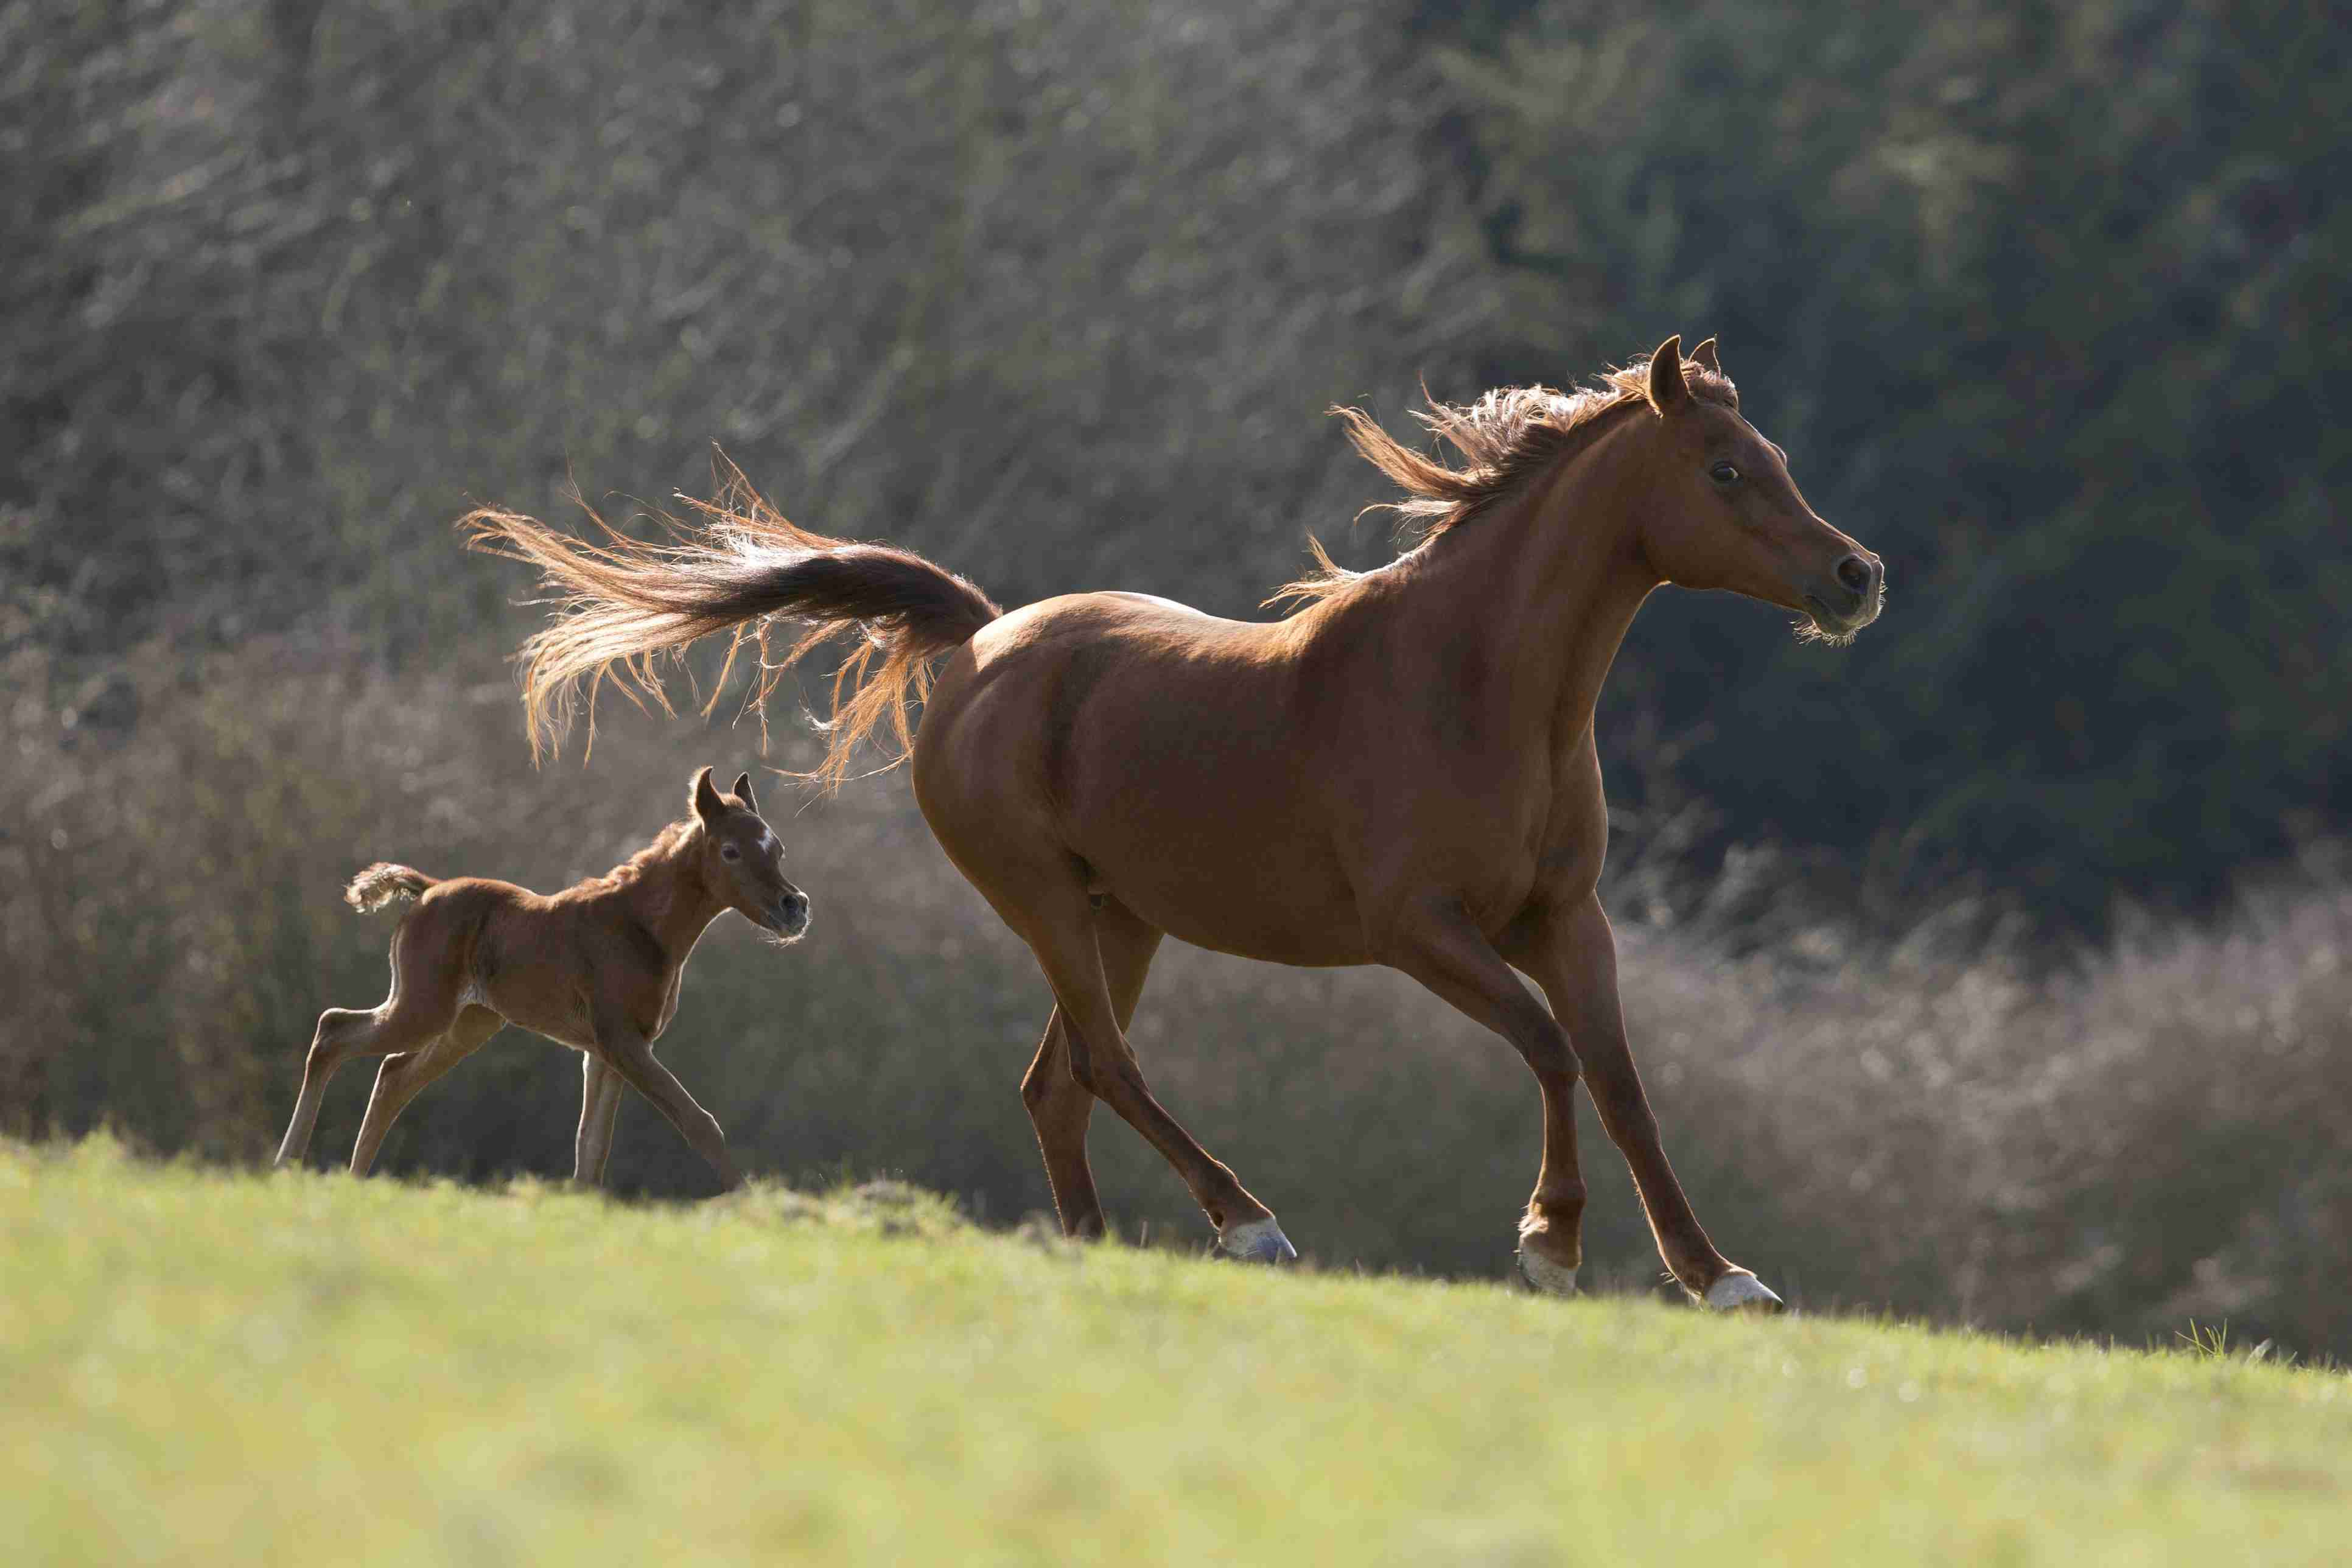 Brown Arabian mare with colt galloping